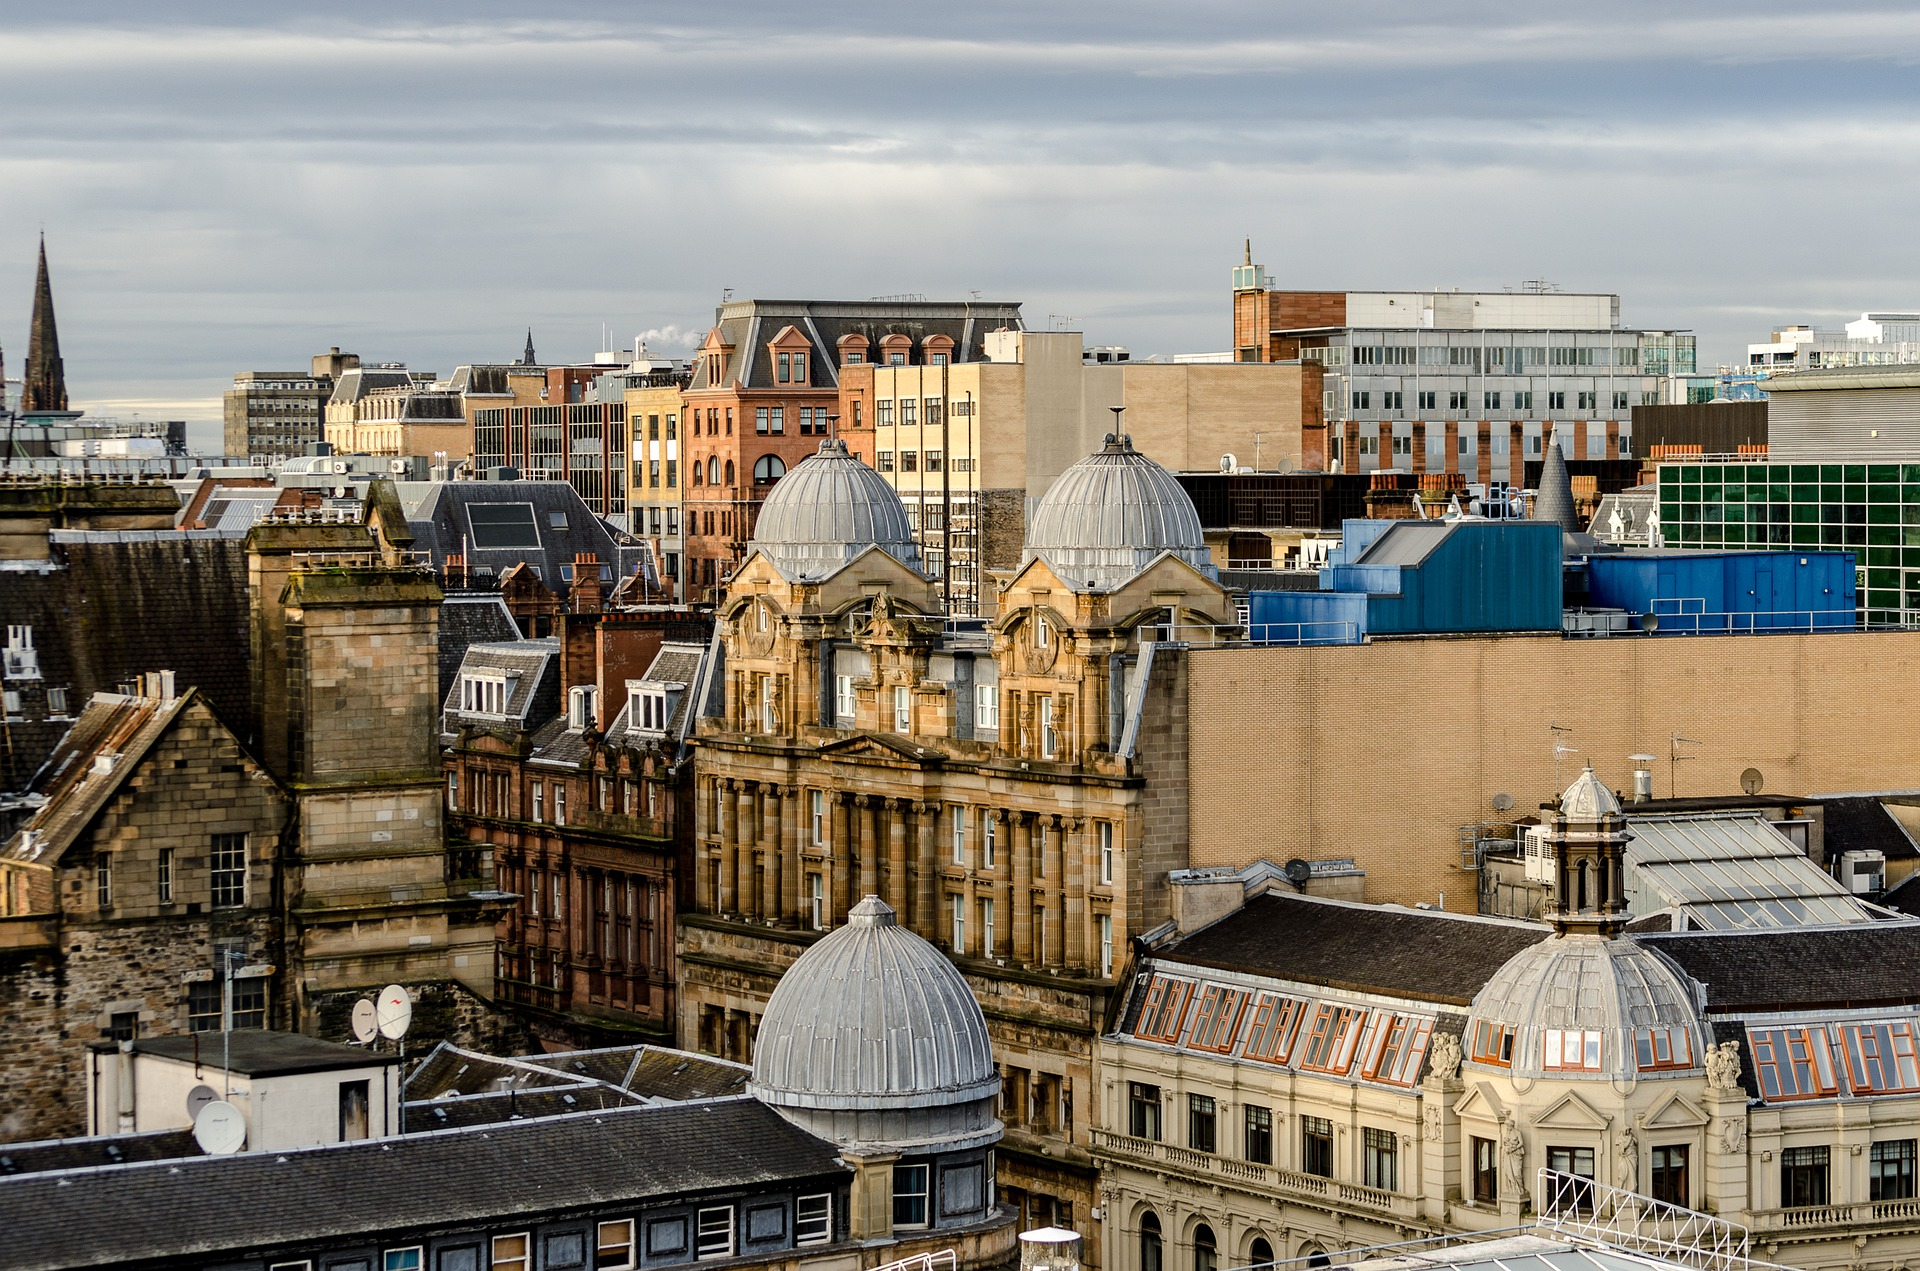 Glasgow announces £30bn of investable green projects